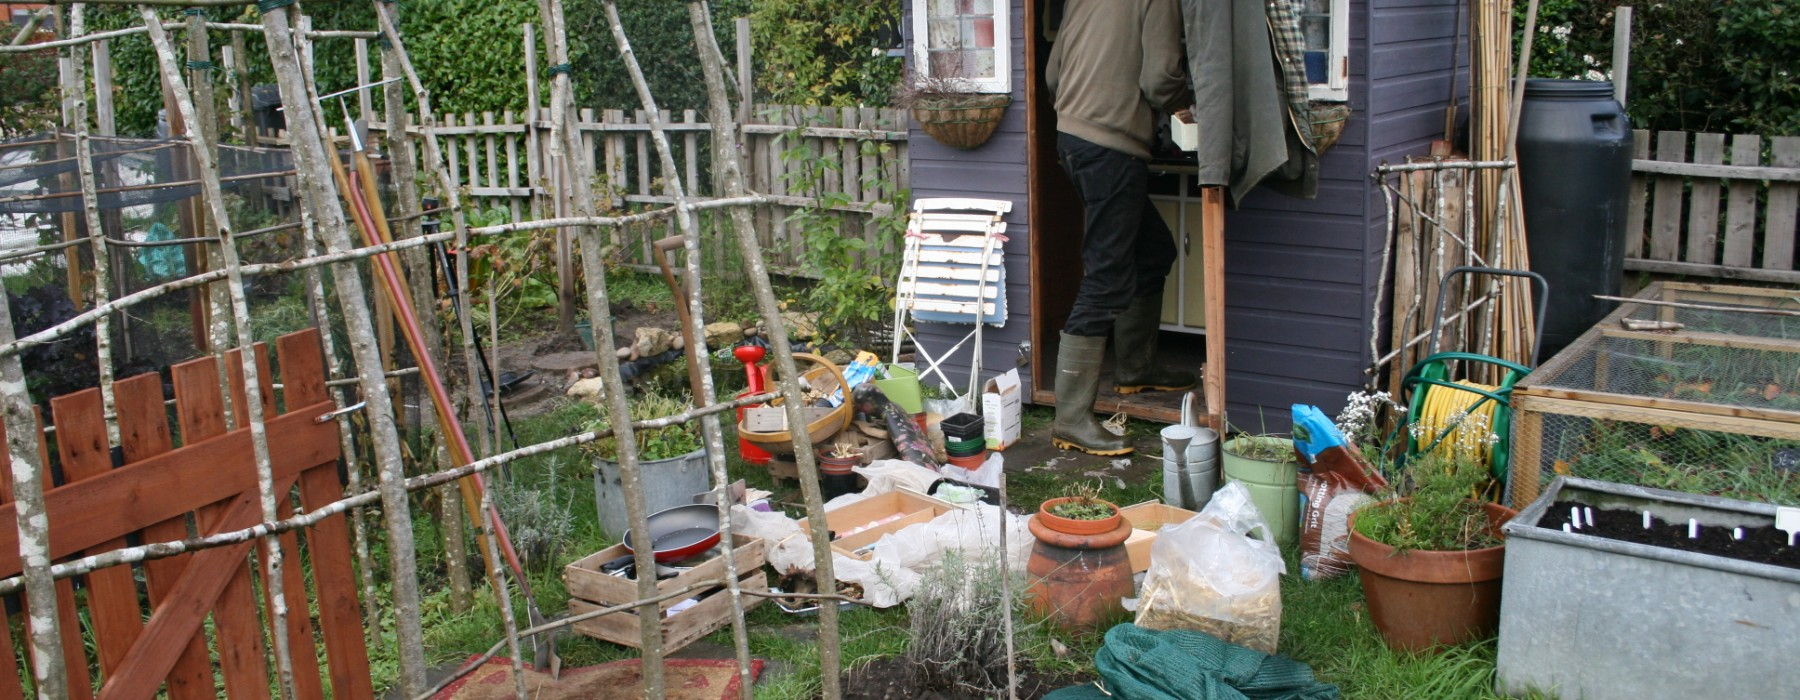 The Allotment Mouse